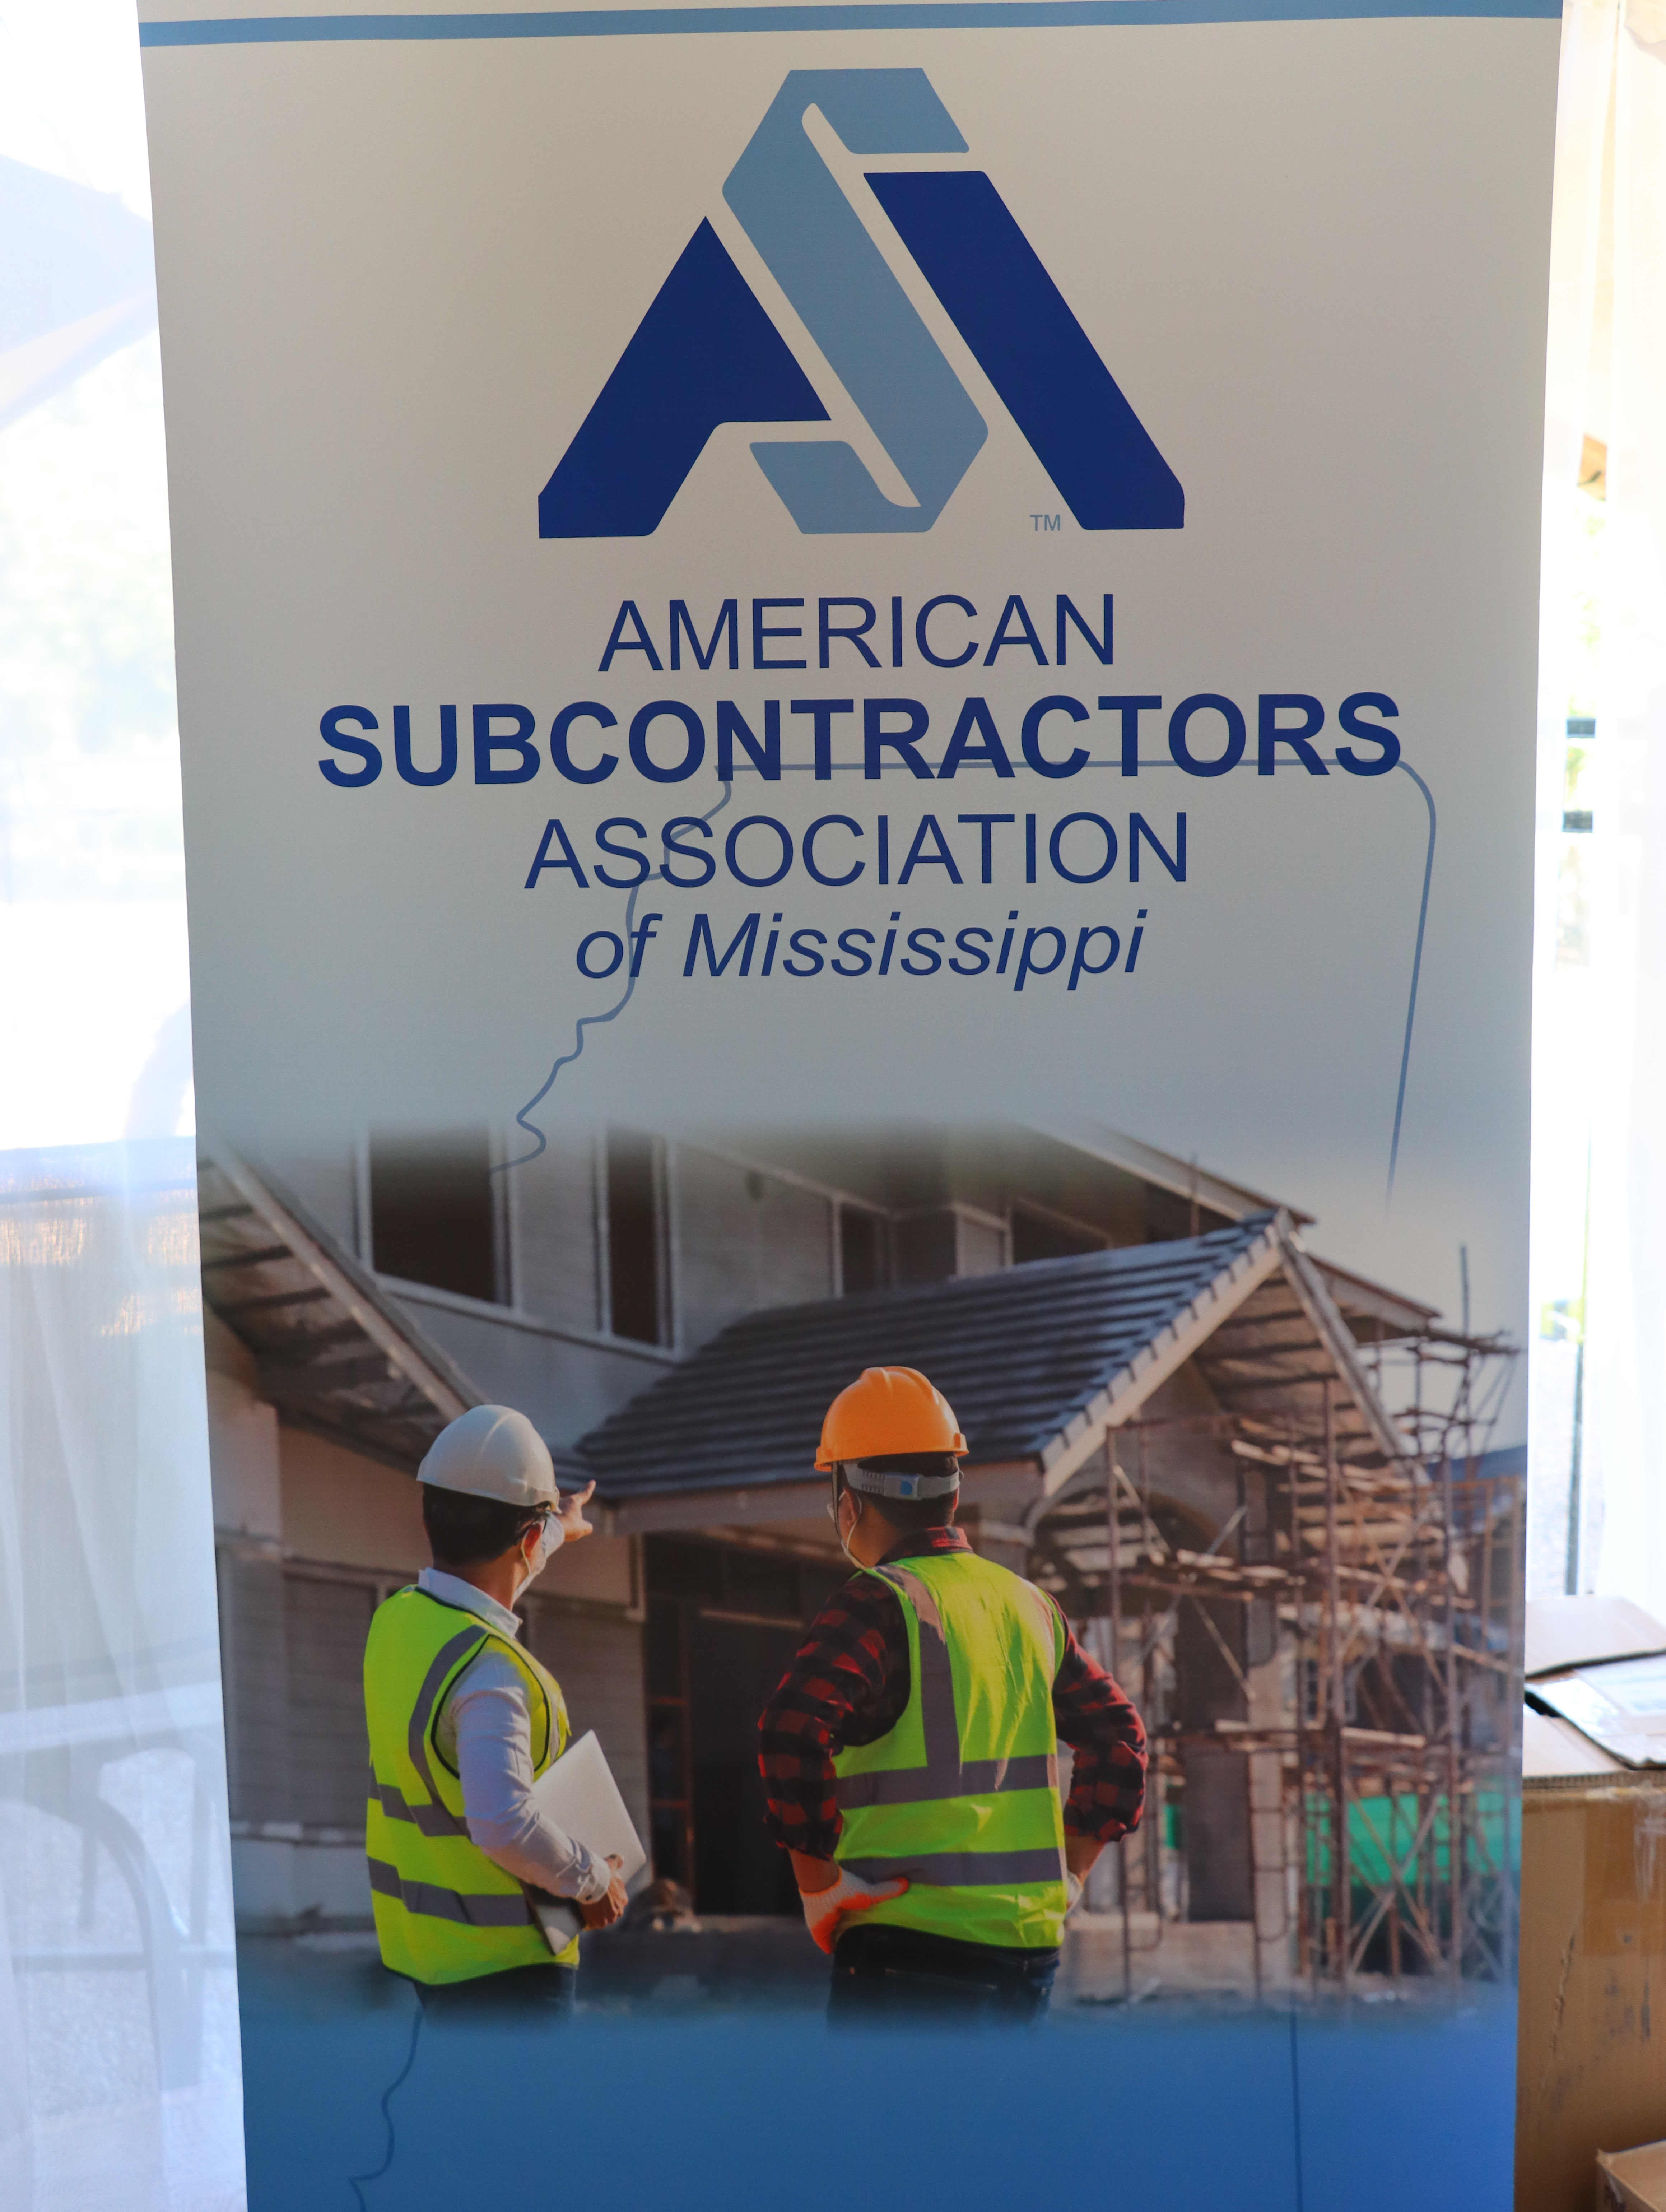 American Subcontractors Association of Mississippi  Image # 2